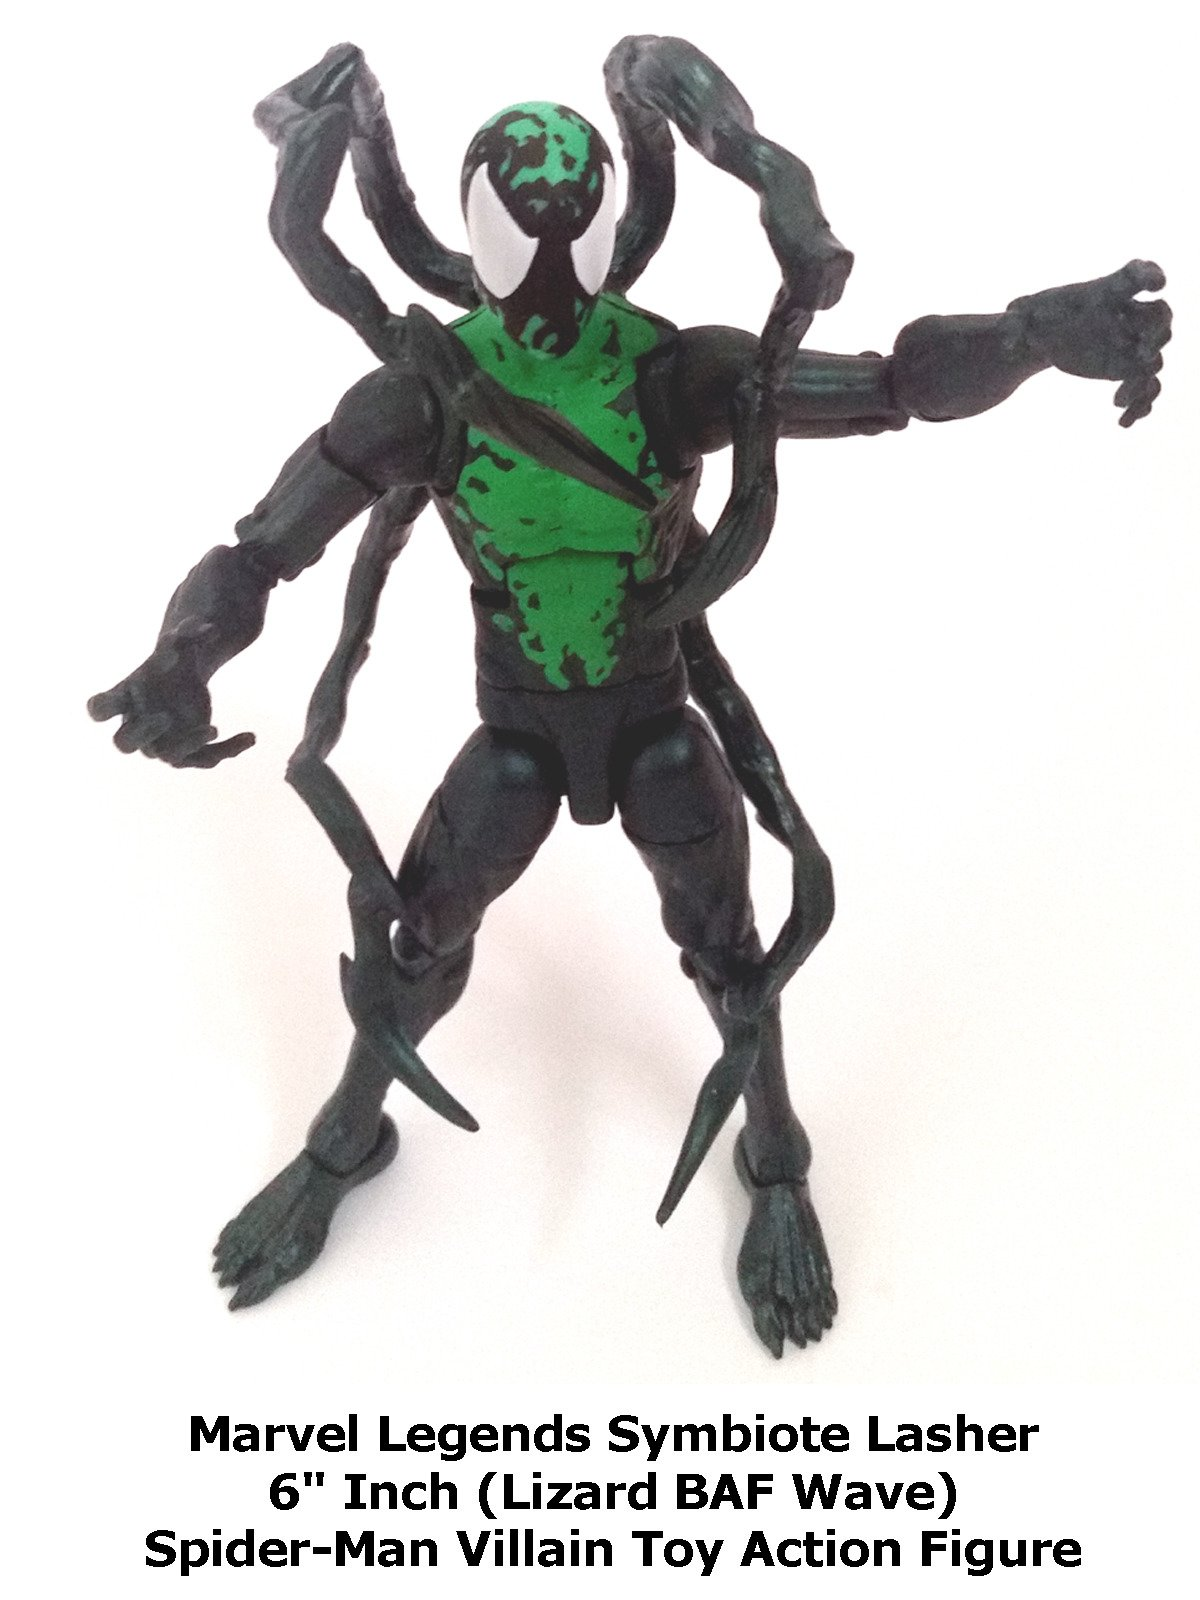 "Review: Marvel Legends Symbiote Lasher 6"" Inch (Lizard BAF Wave) Spider-Man Villain Toy Action Figure"